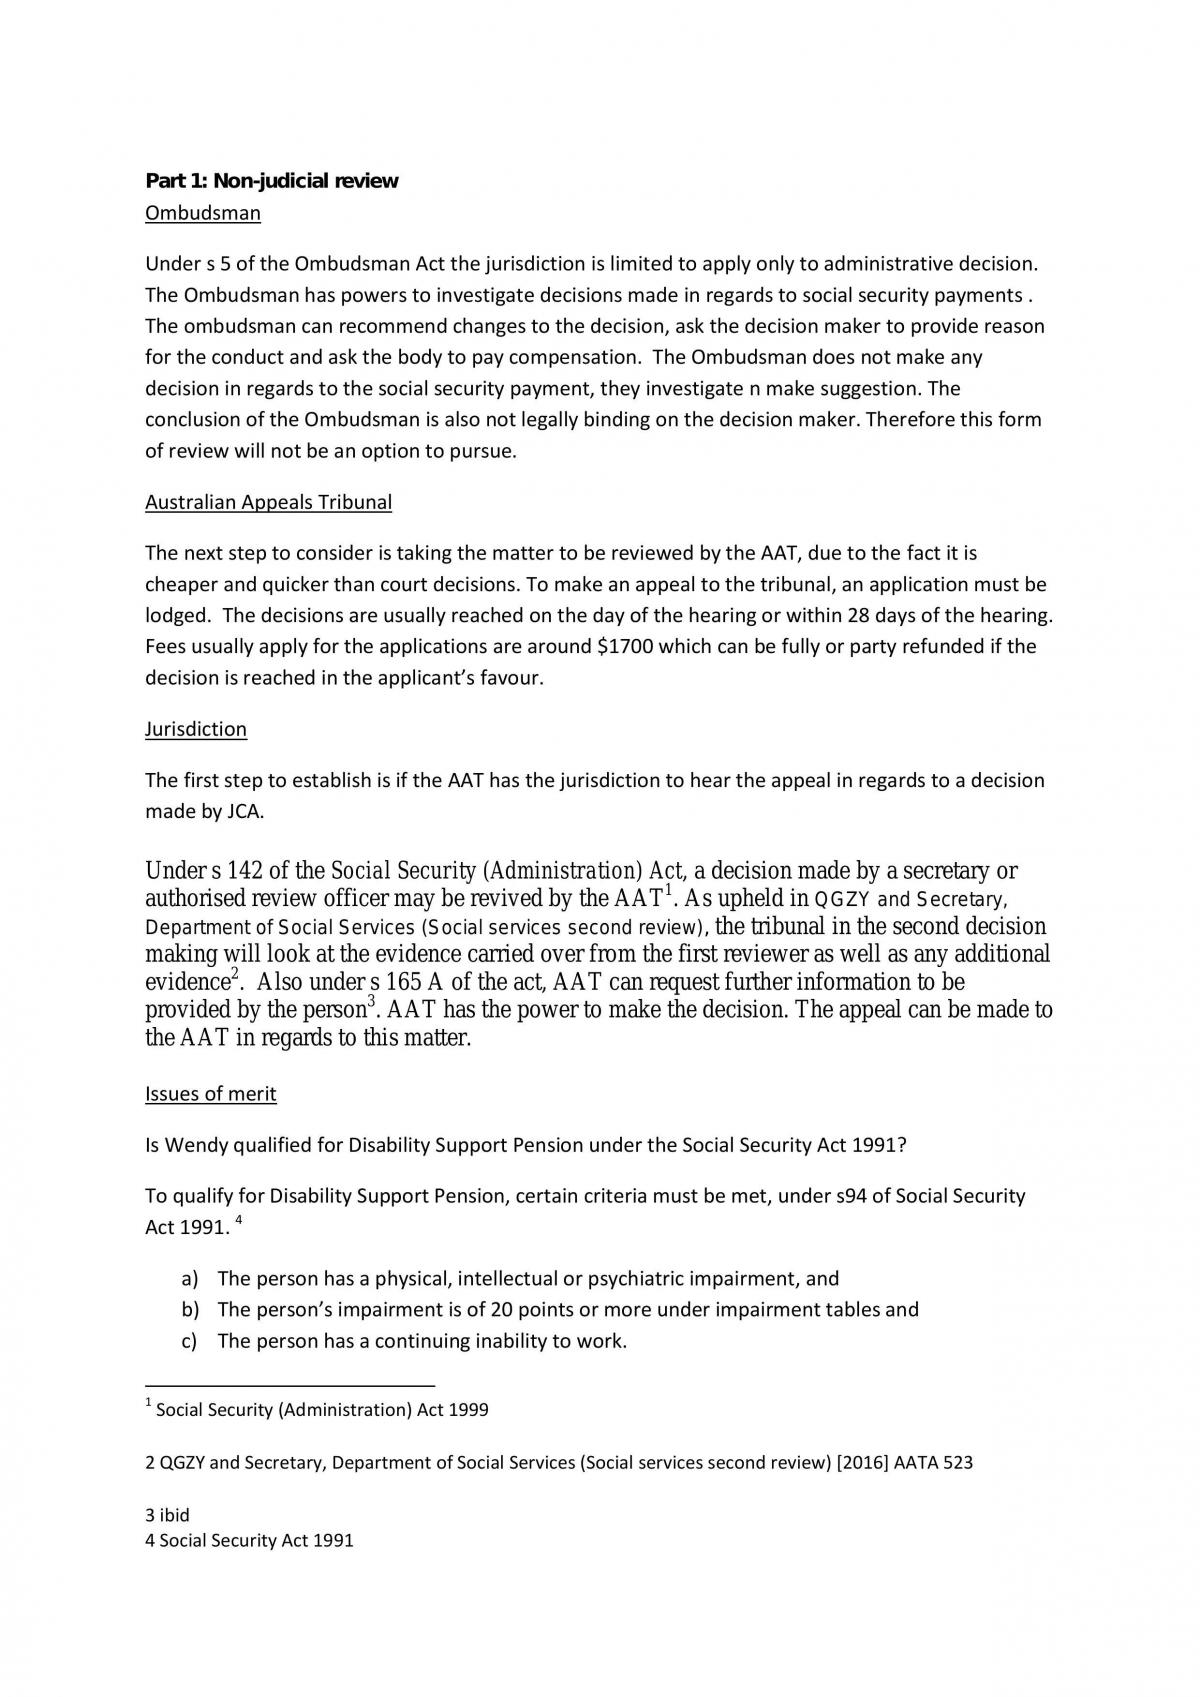 200013 Assignment - Page 1